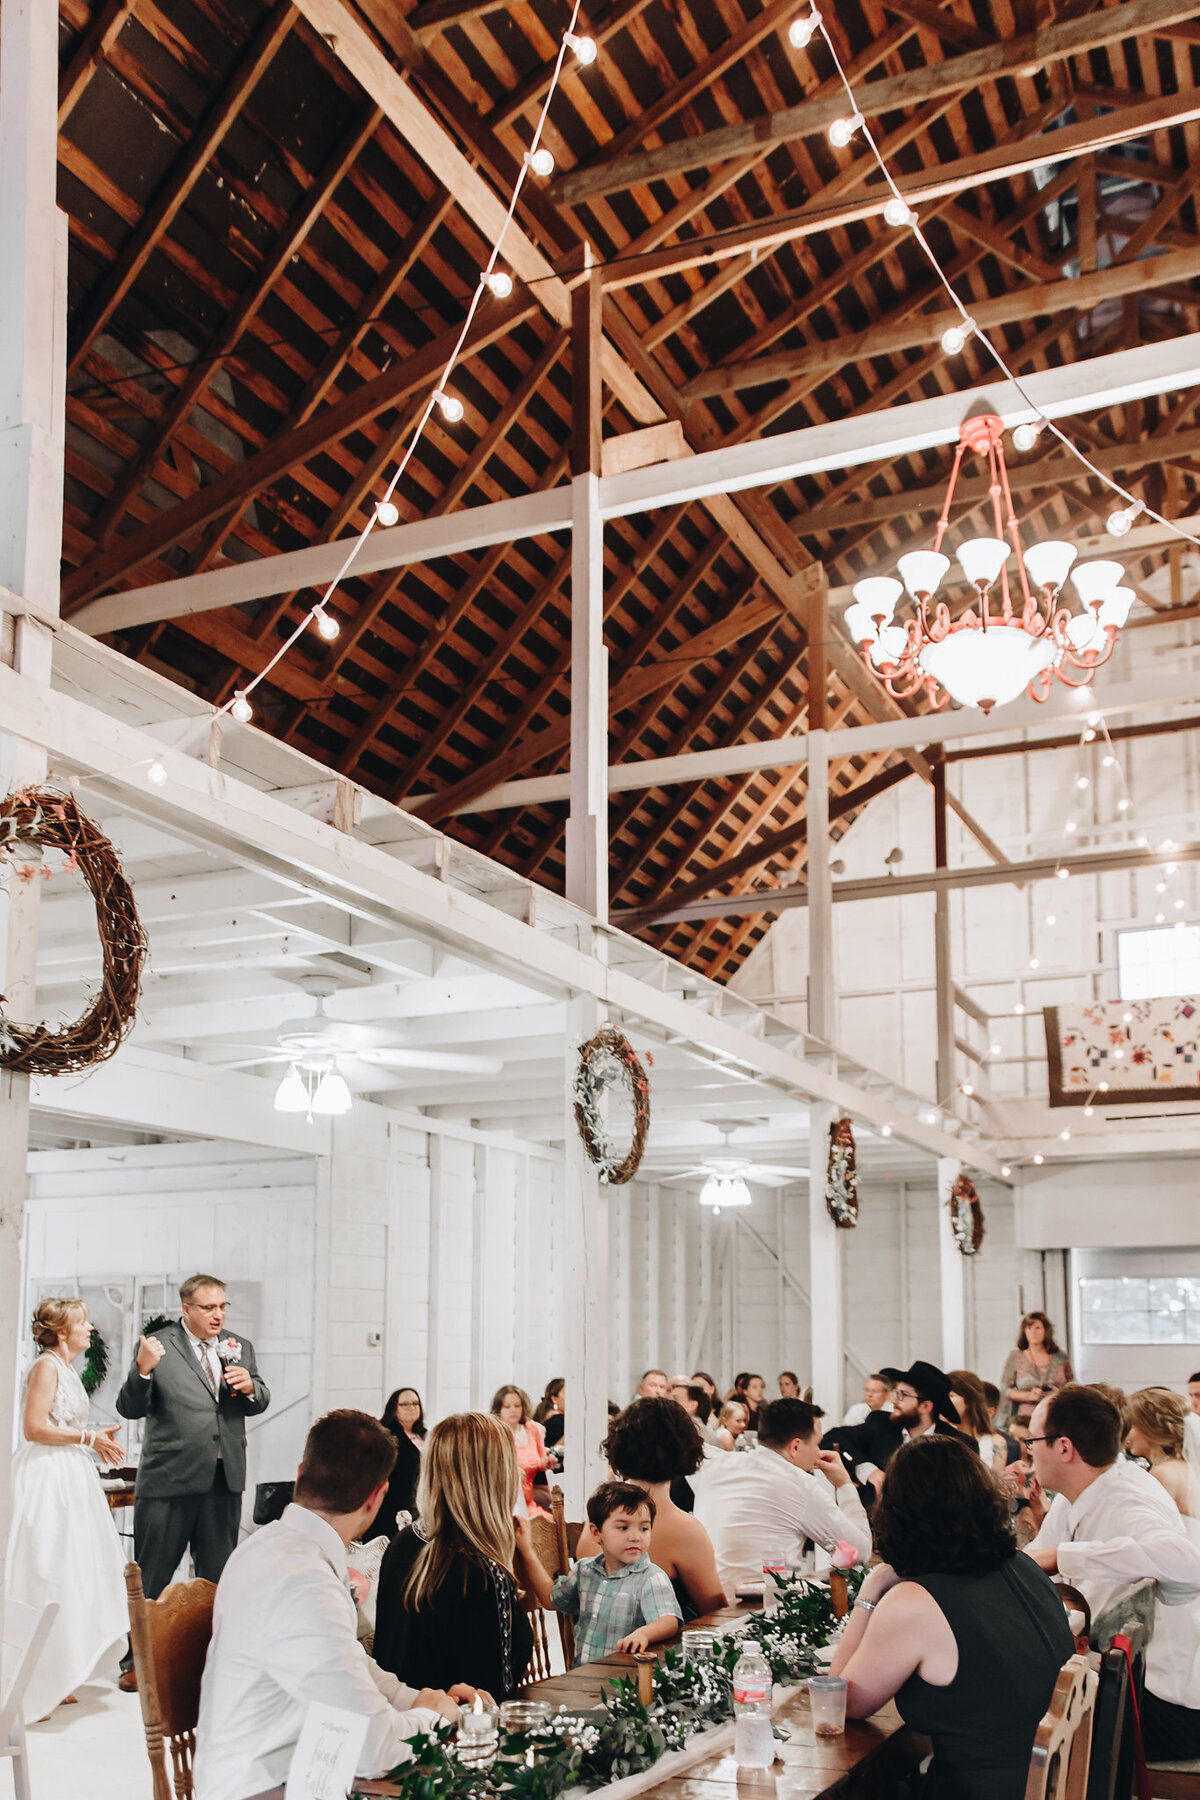 The Grand Texana's Reception hall. A gorgeous dairy barn transformed into a reception hall. The photo shows guests attending the reception, string lights hanging from the ceiling and the bride and groom are giving a speech